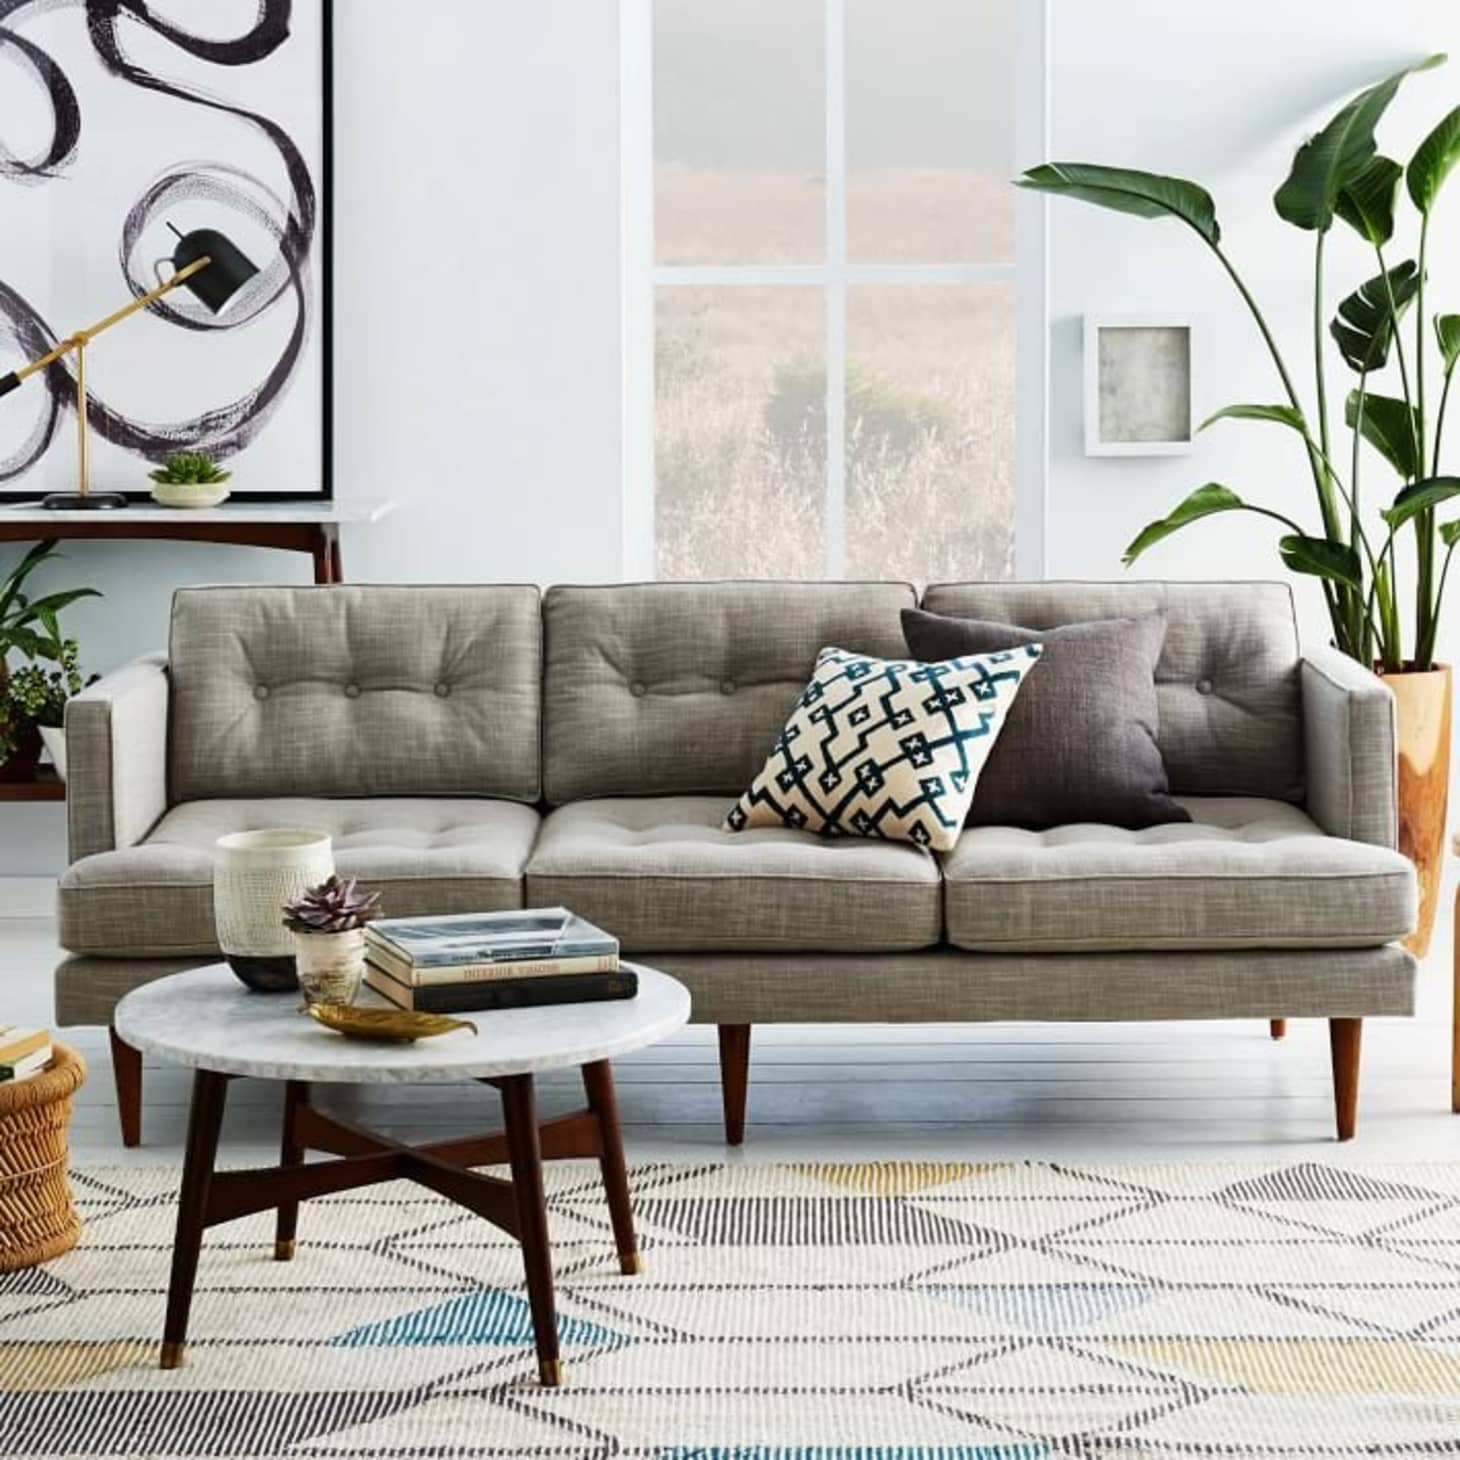 Mid Century Florence Knoll Style Sofas For Every Budget Within Florence Knoll Style Sofas (View 5 of 15)